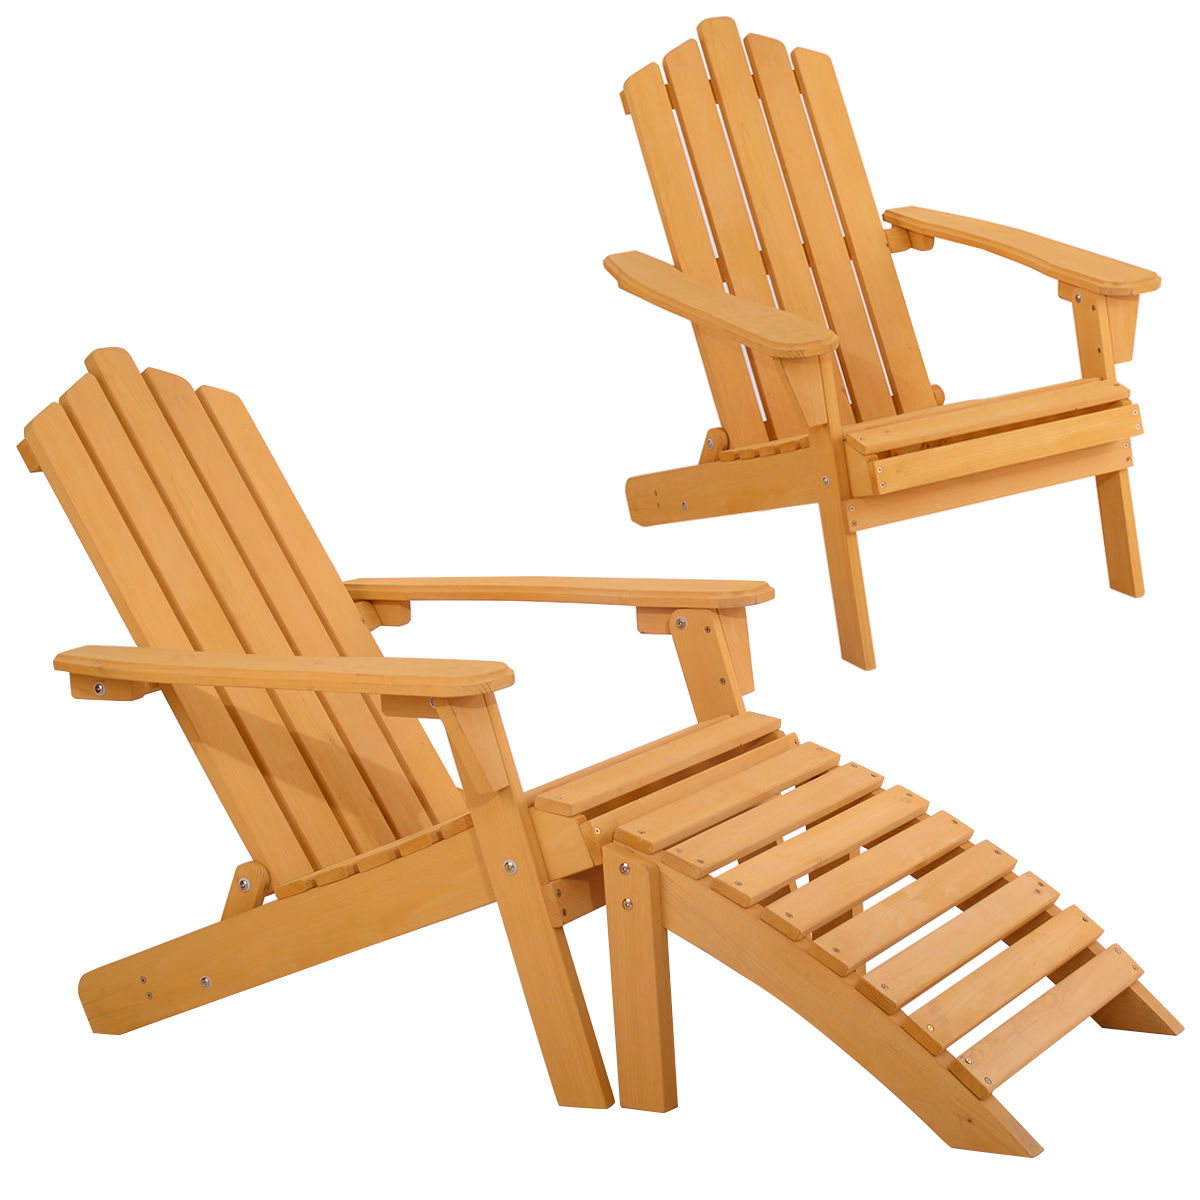 Gymax Outdoor Patio Wood Adirondack Chair w  Ottoman by Gymax